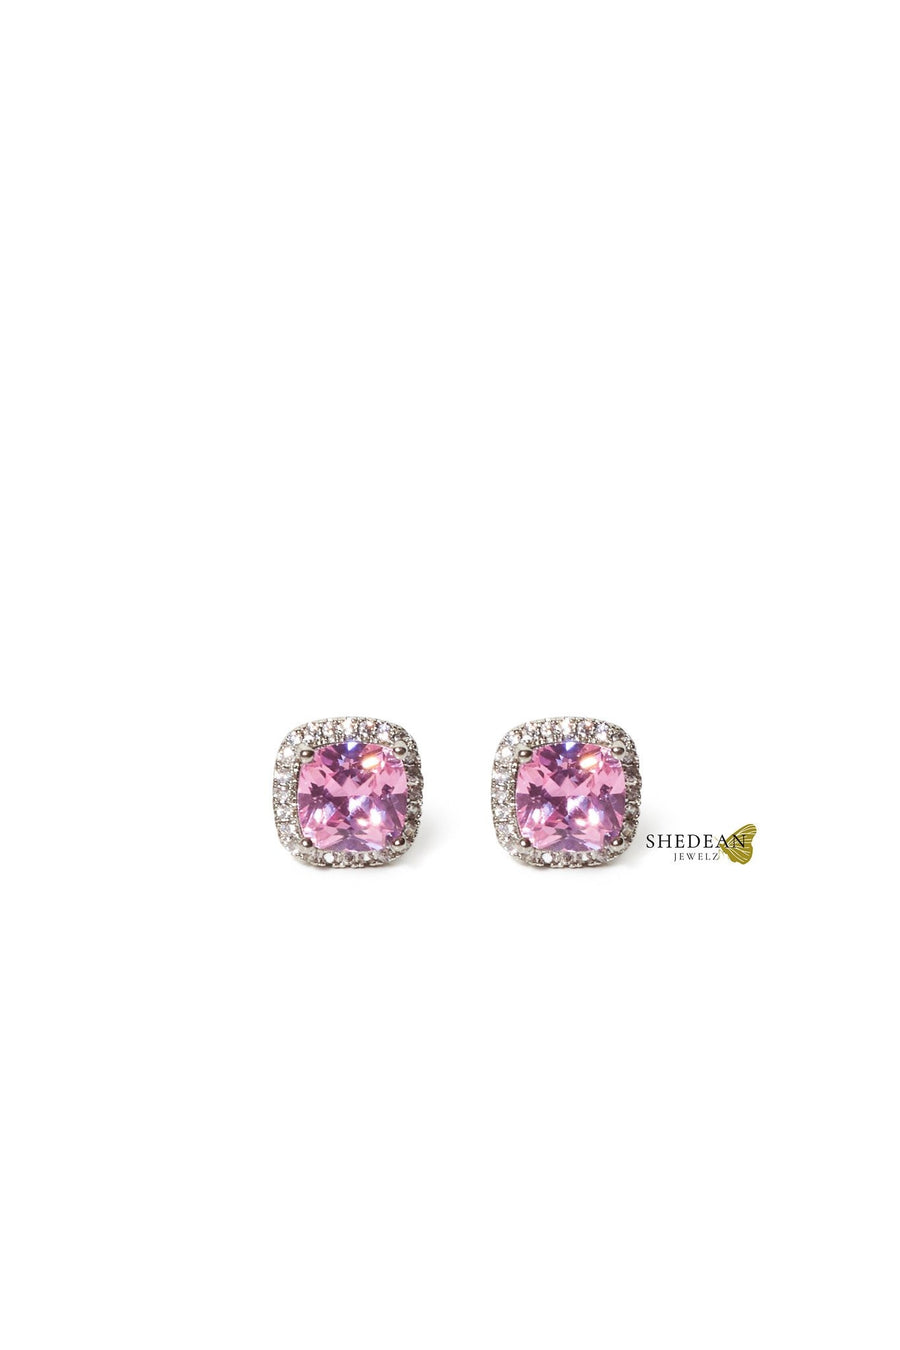 Rose Sterling Studs - Shedean Jewelz